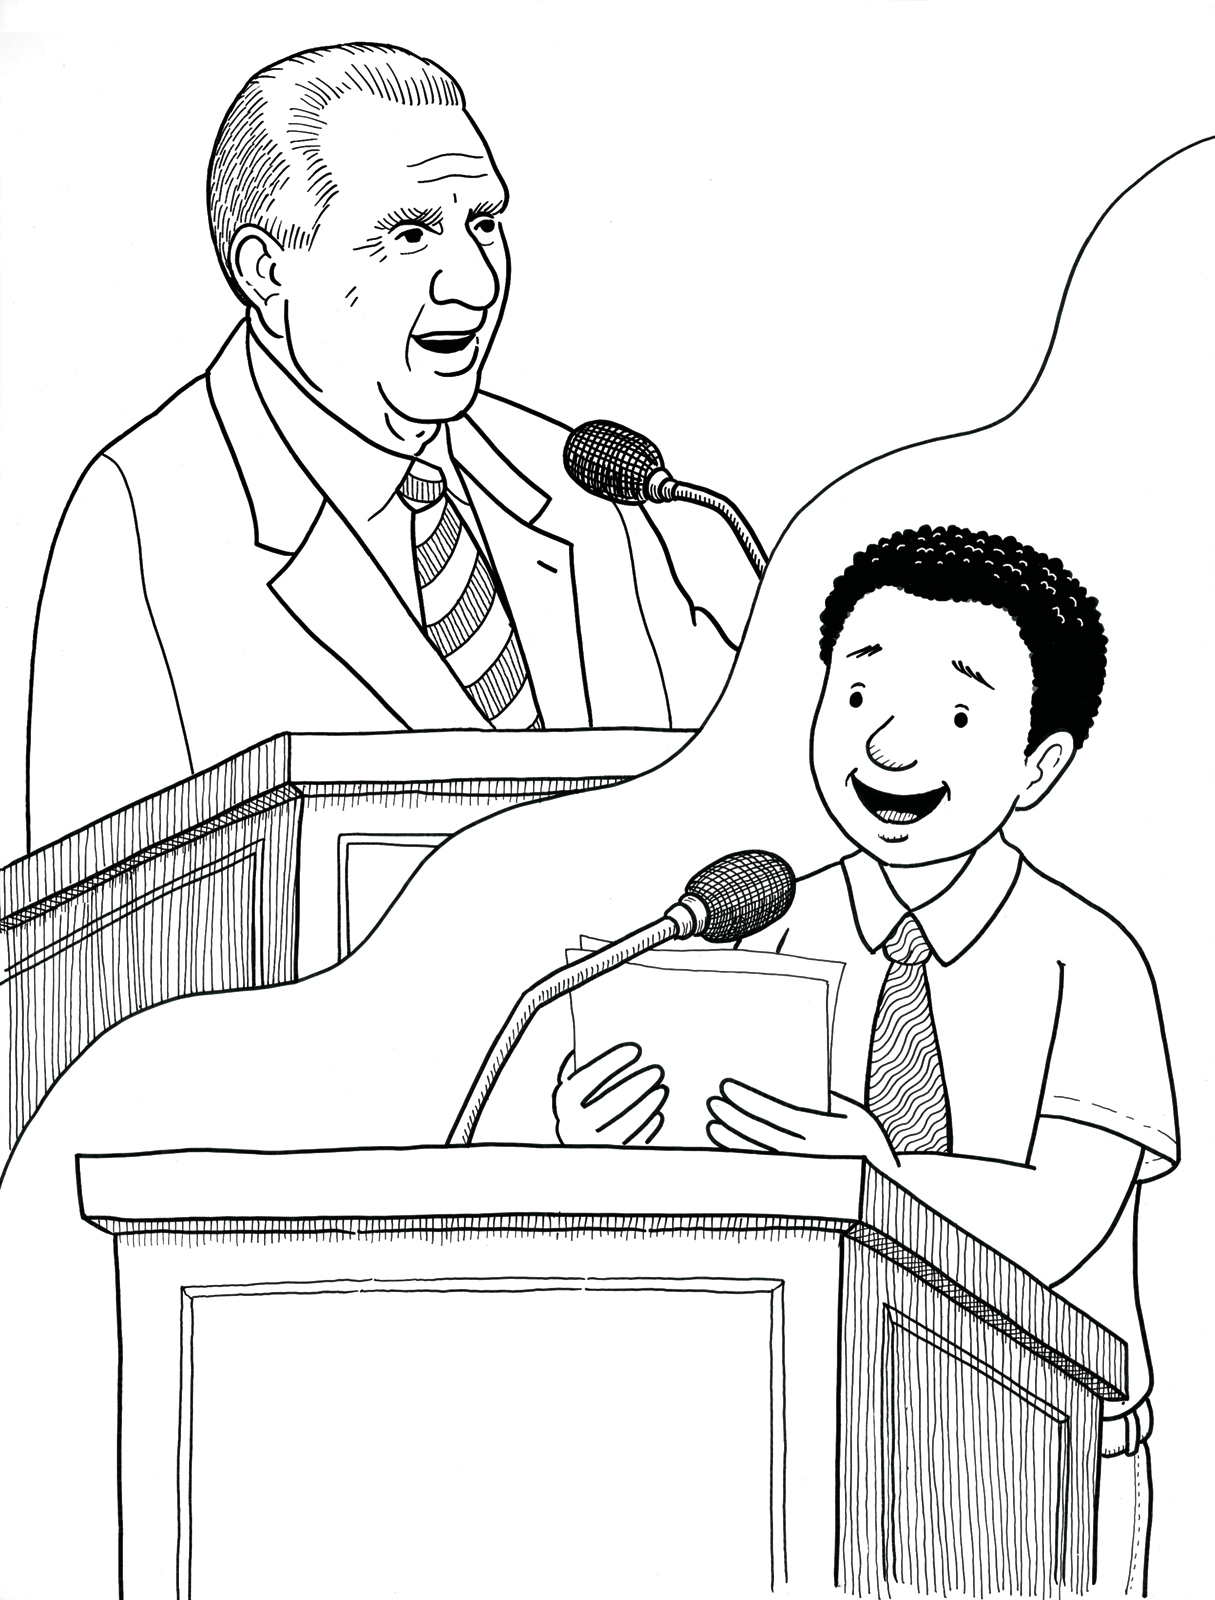 coloring pagesgeneral - Lds Coloring Pages For Kids